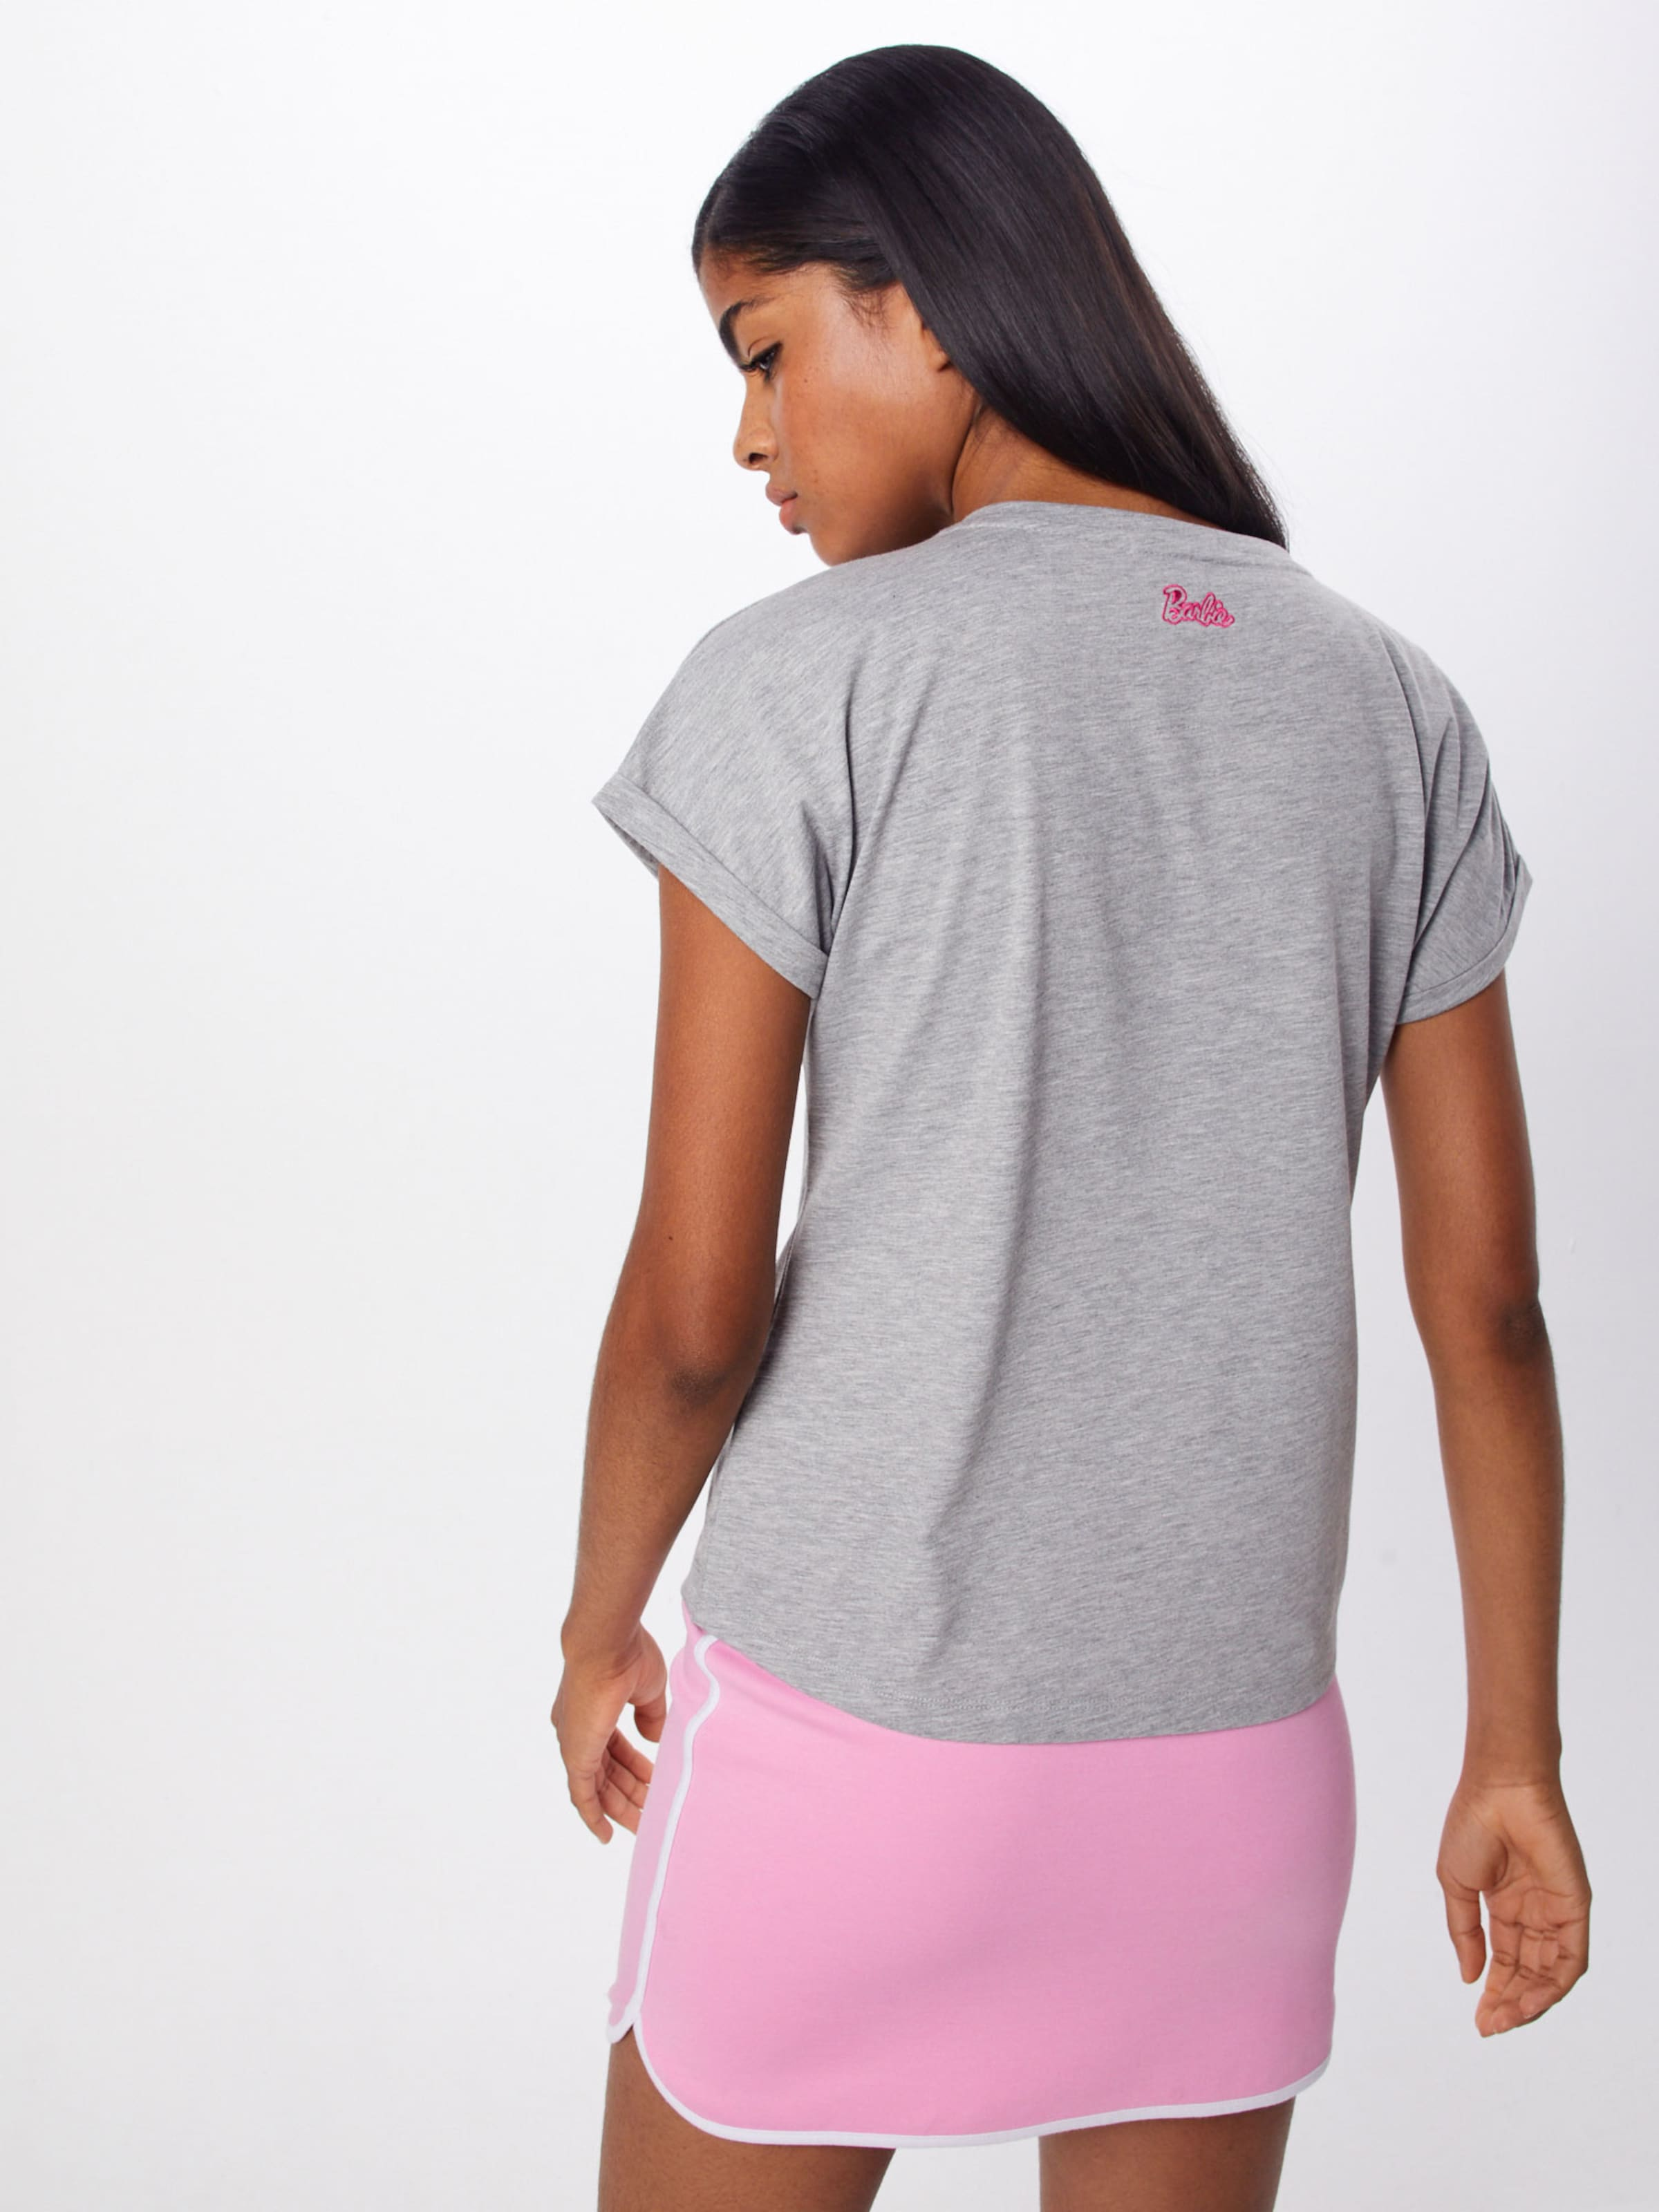 About Barbie X Graumeliert shirt' In 'fabienne You T Shirt Nnw08m